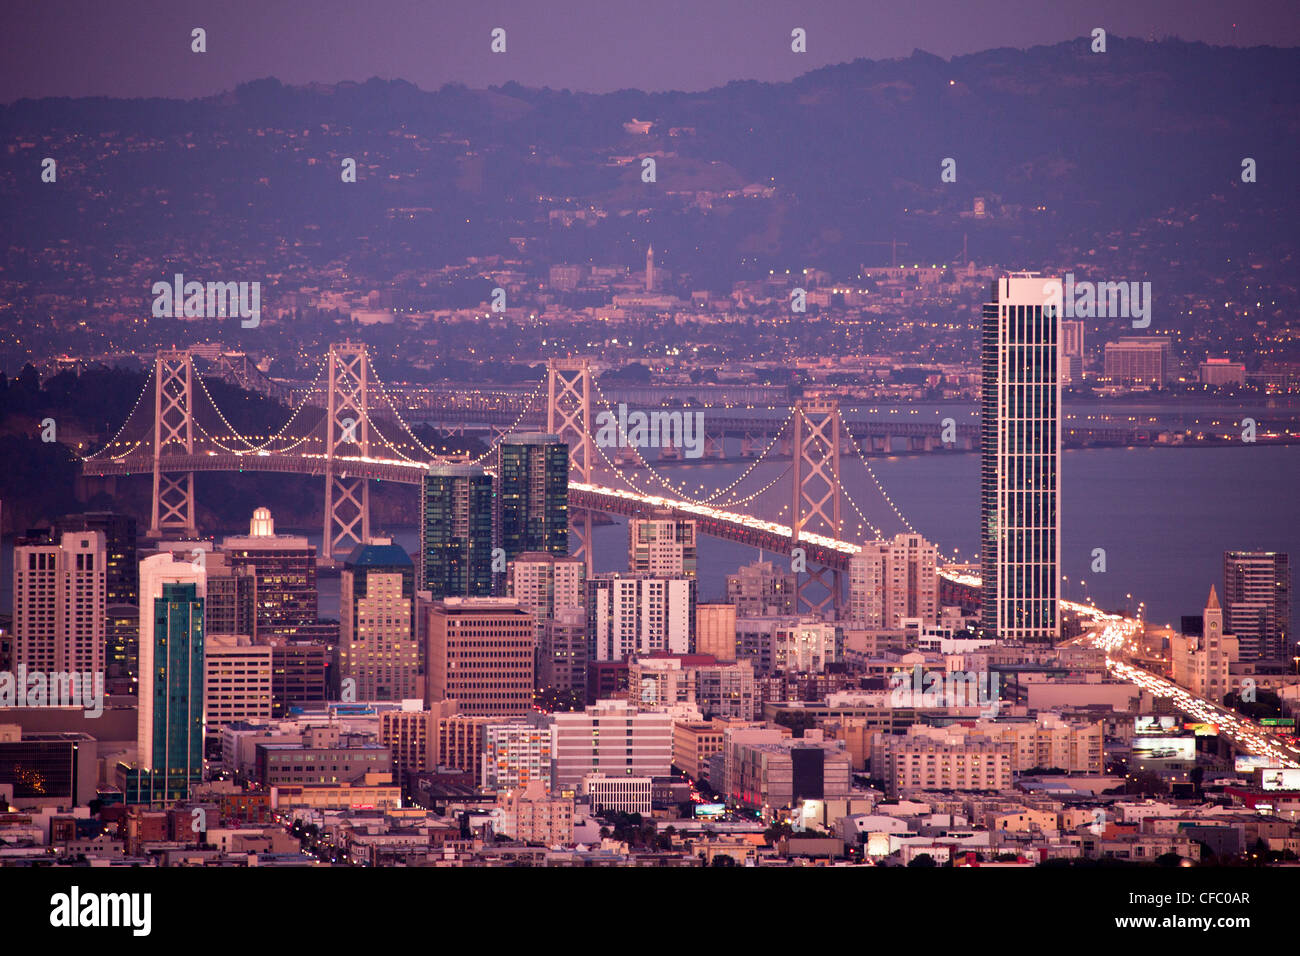 USA, United States, America, California, San Francisco, City, Downtown, Bay Bridge, architecture, bay, downtown, - Stock Image